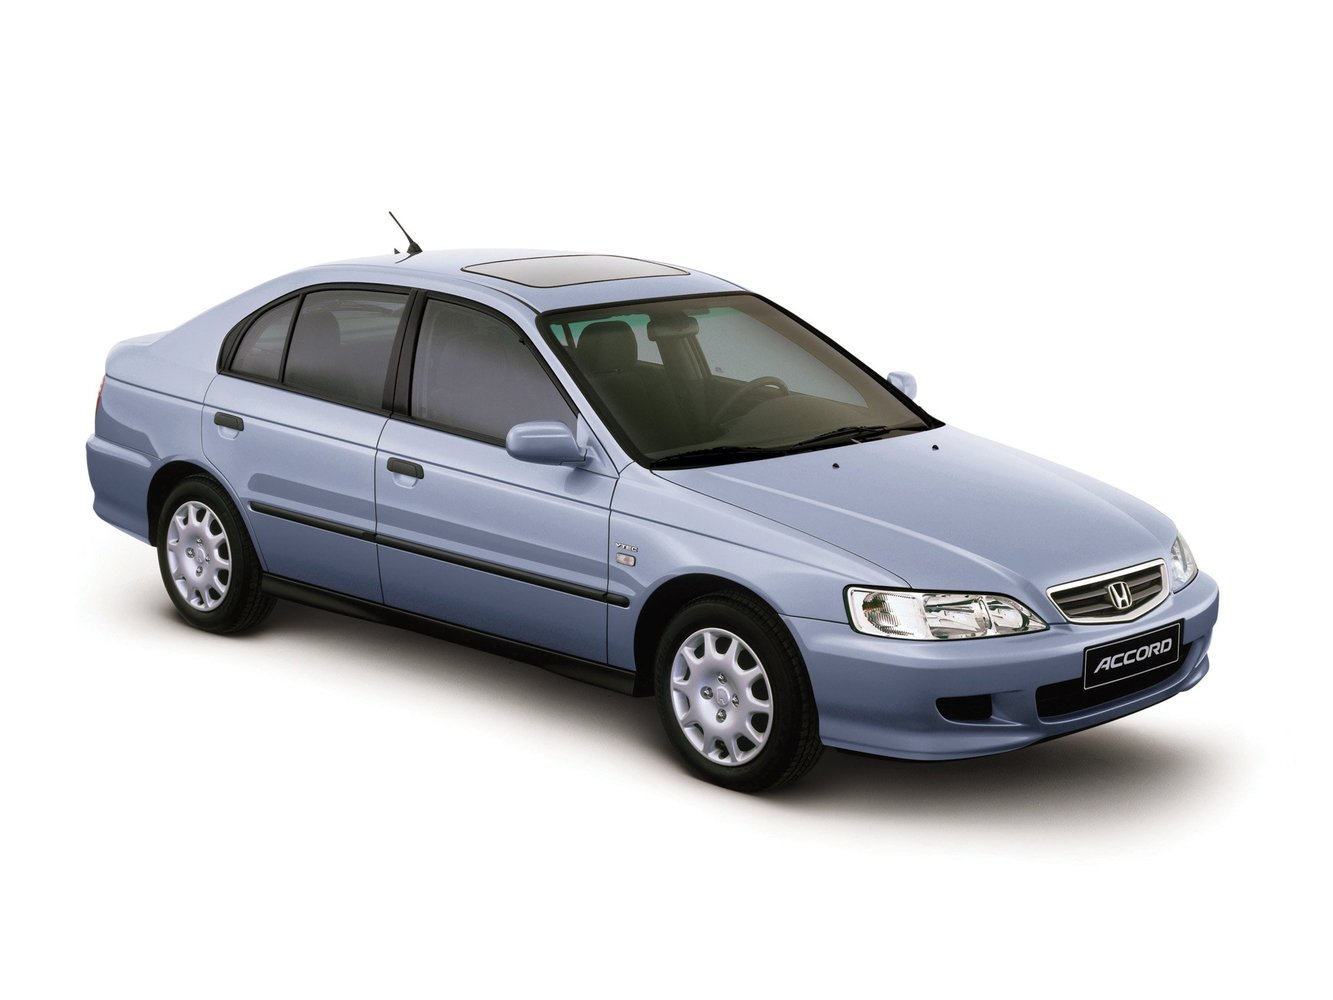 хэтчбек 5 дв. Honda Accord 1998 - 2002г выпуска модификация 1.6 MT (116 л.с.)